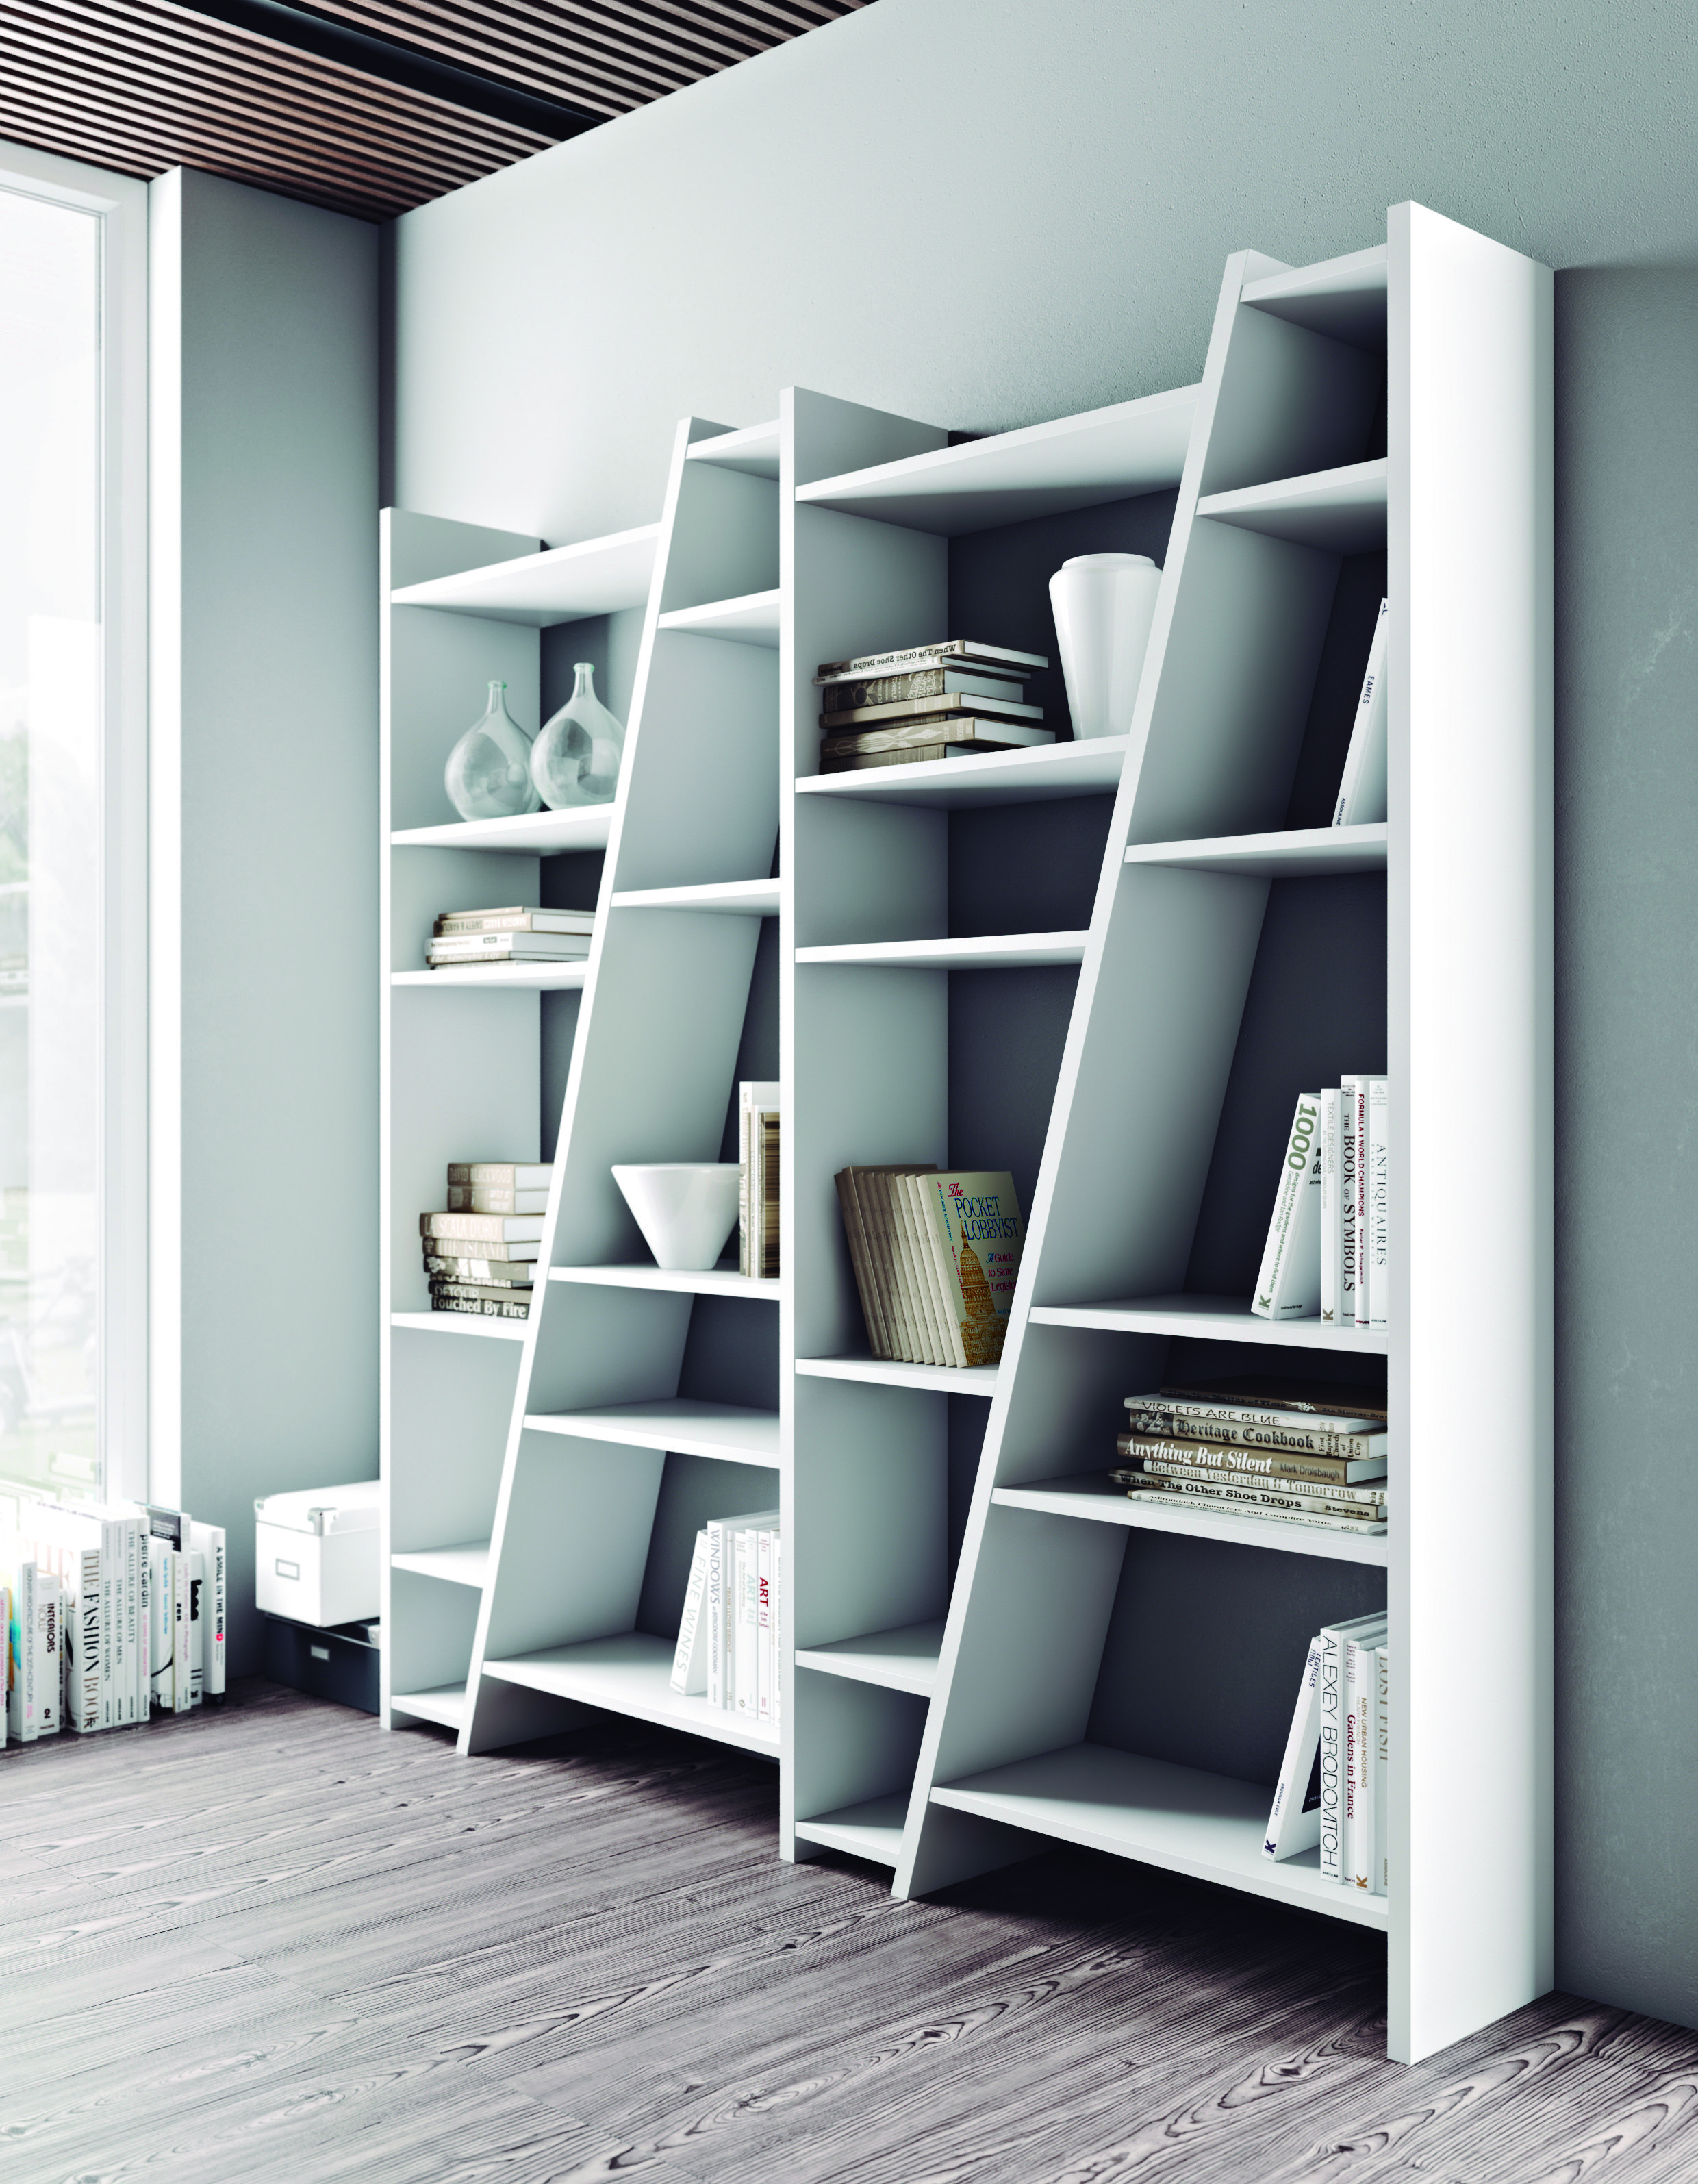 our corner shelves dividers architecture encourage bookshelf wooden regarding for curved several shelving with white room bookcase divider storage renovation intended